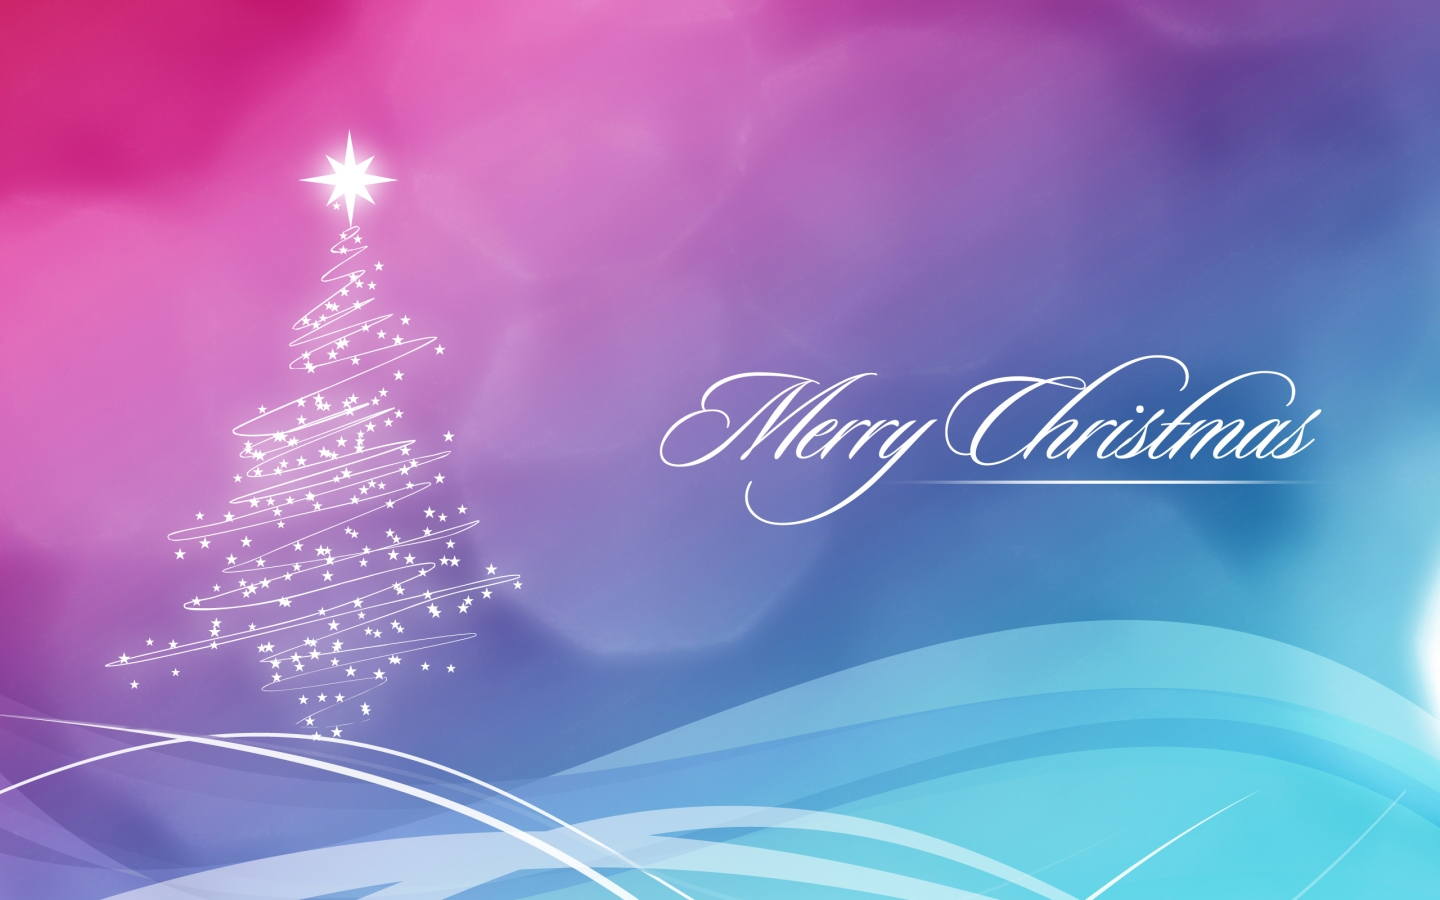 1440x900 Merry Christmas desktop PC and Mac wallpaper 1440x900